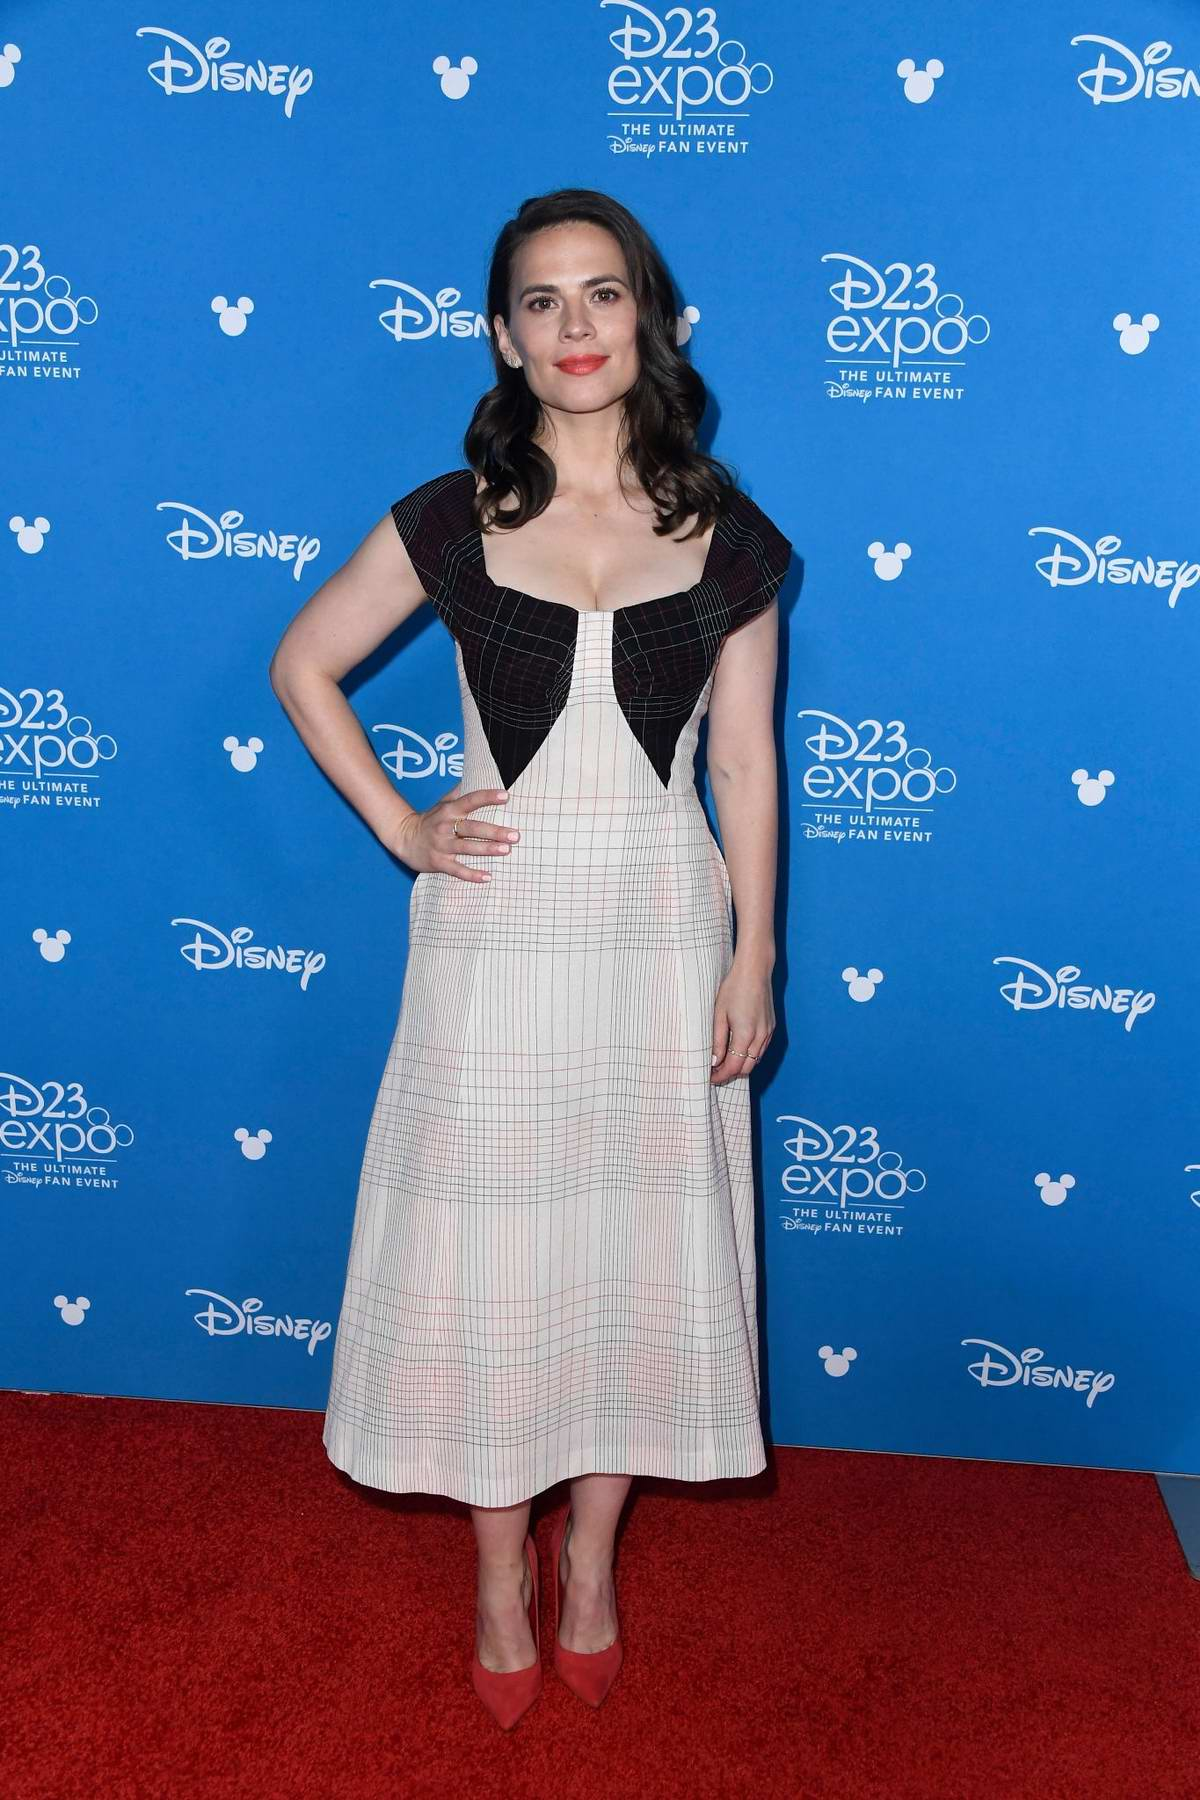 Hayley Atwell attends Disney D23 Expo 2019 at Anaheim Convention Center in Anaheim, California